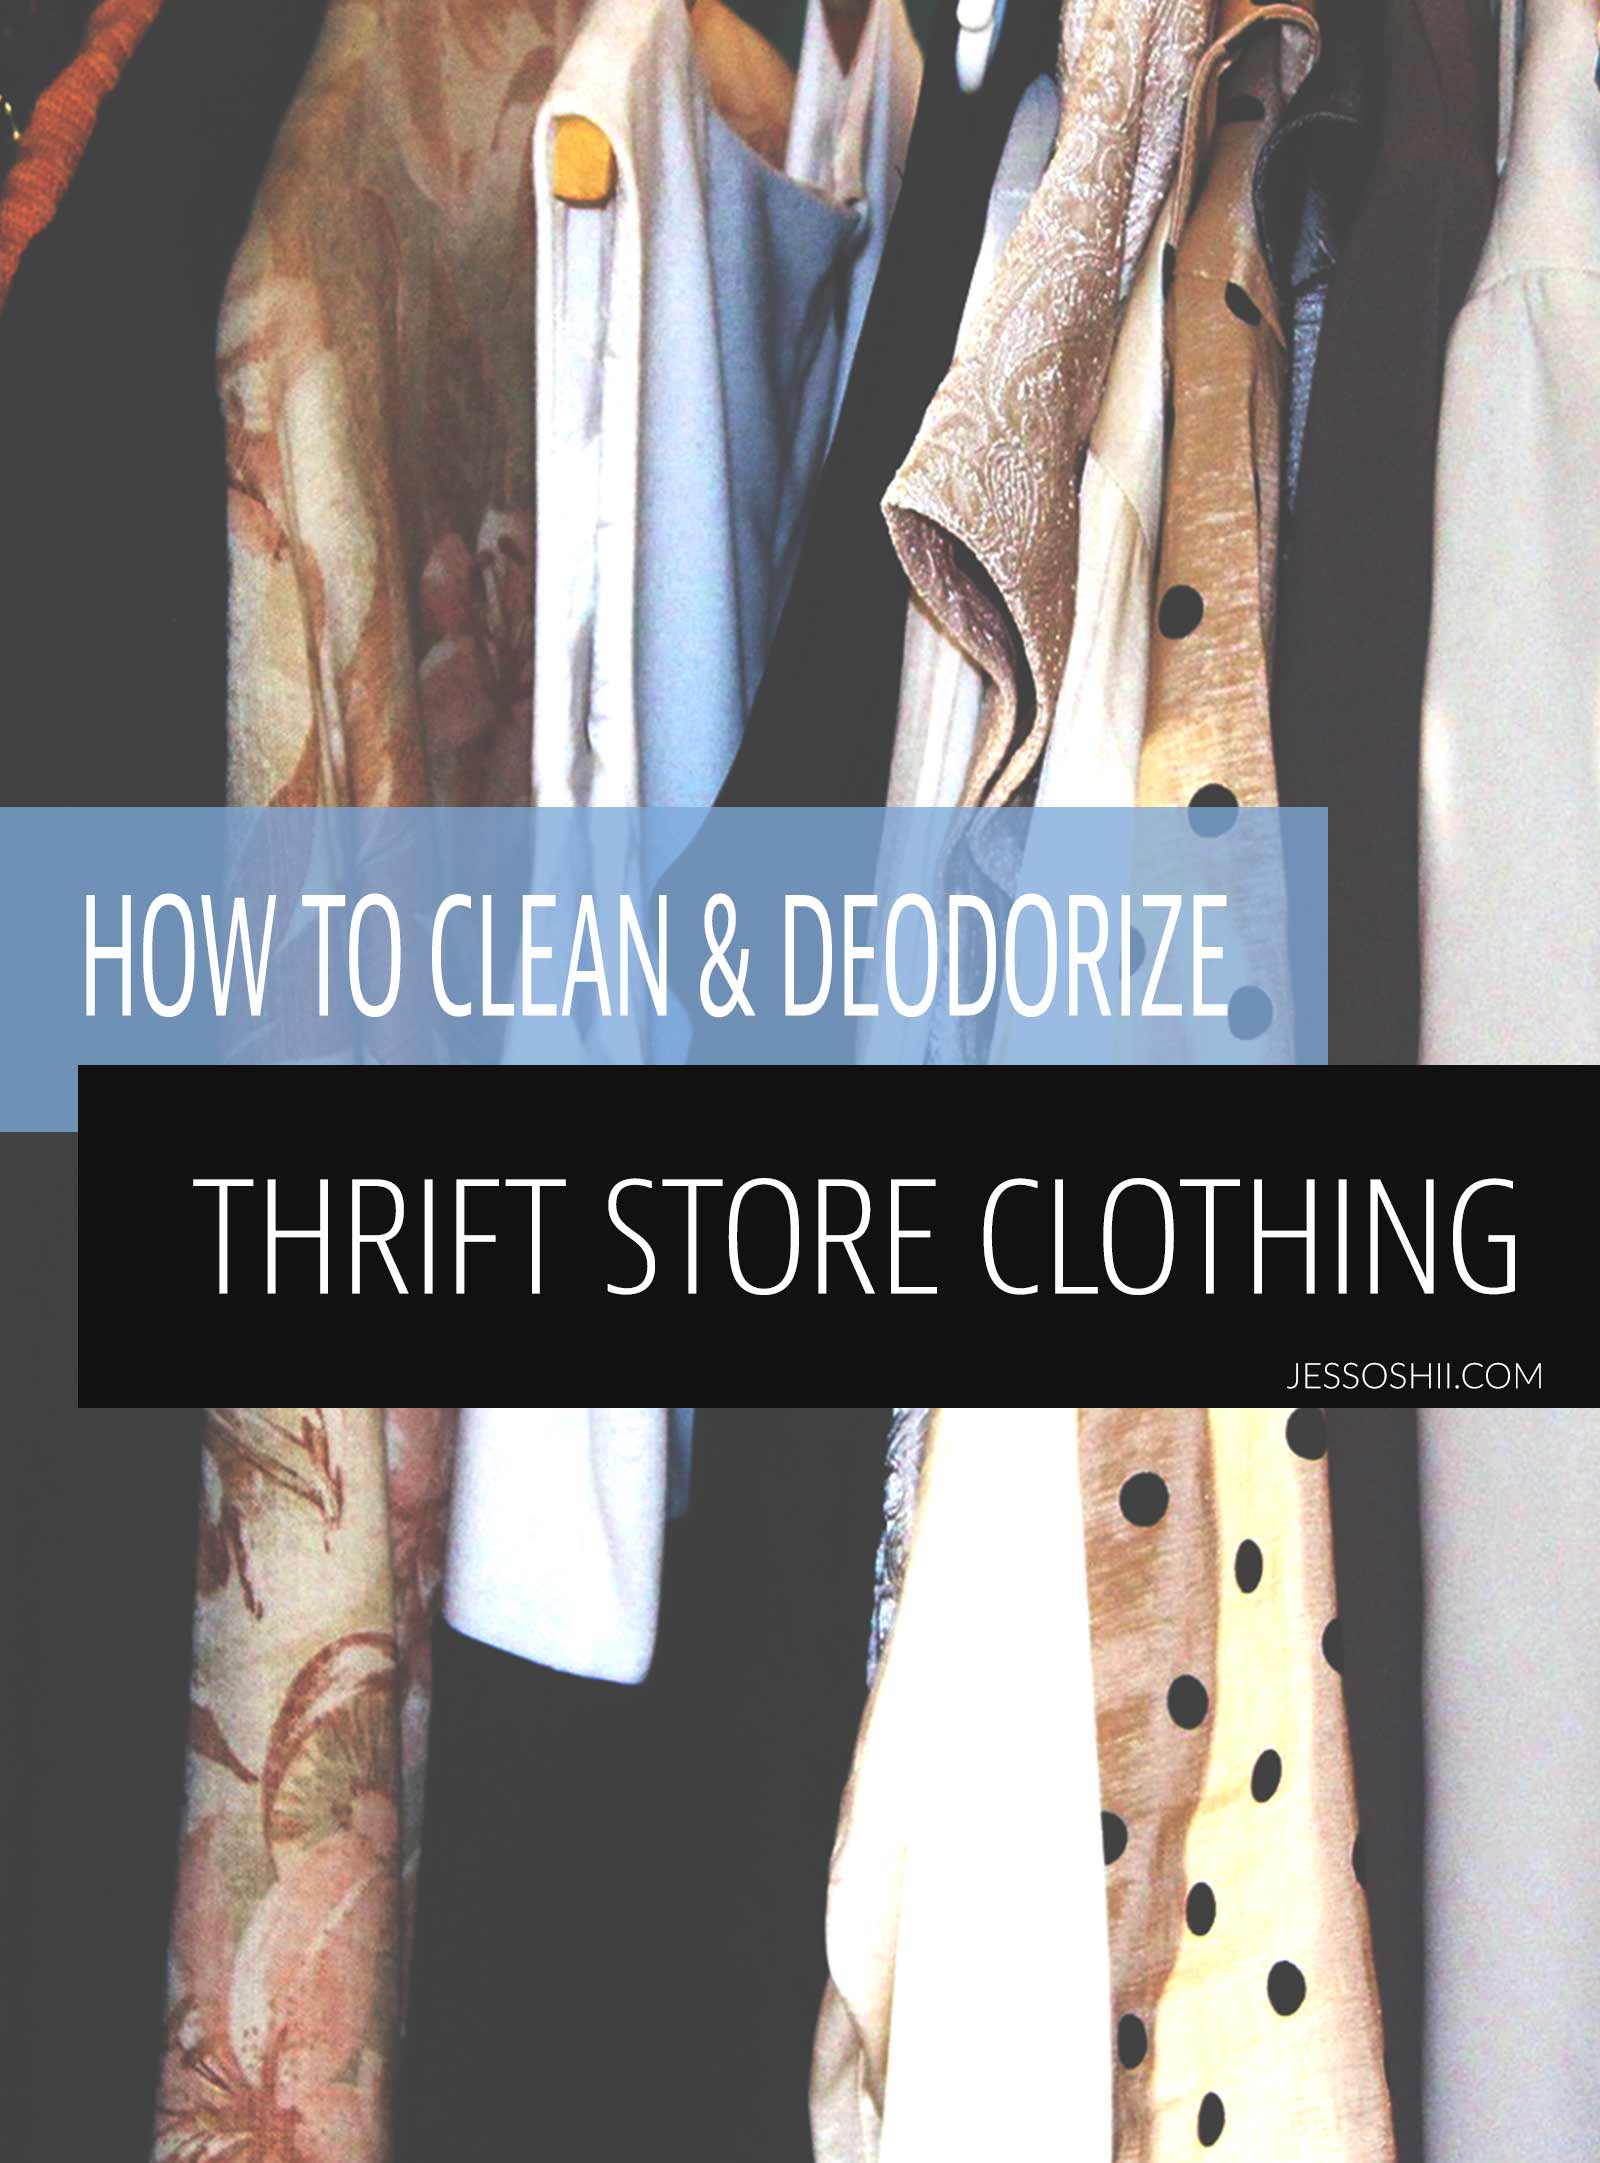 Online Thrift Store Clothes >> How To Clean Deodorize Thrift Store Clothes Jessoshii